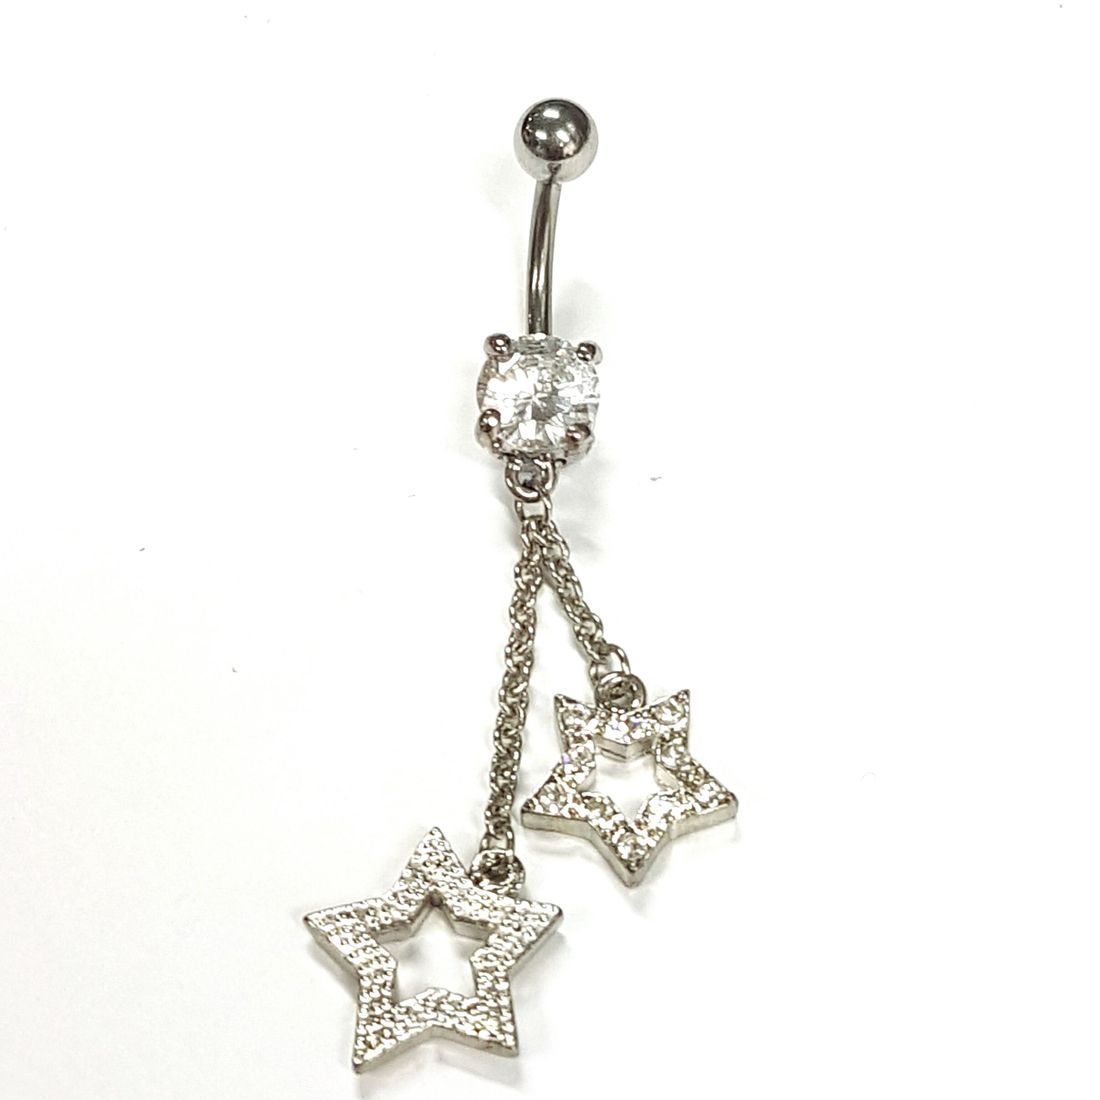 1.6mm x 10mm Clear Crystal Stars Titanium Navel Bar  available at Kazbah online and our Leicester City Centre Shop